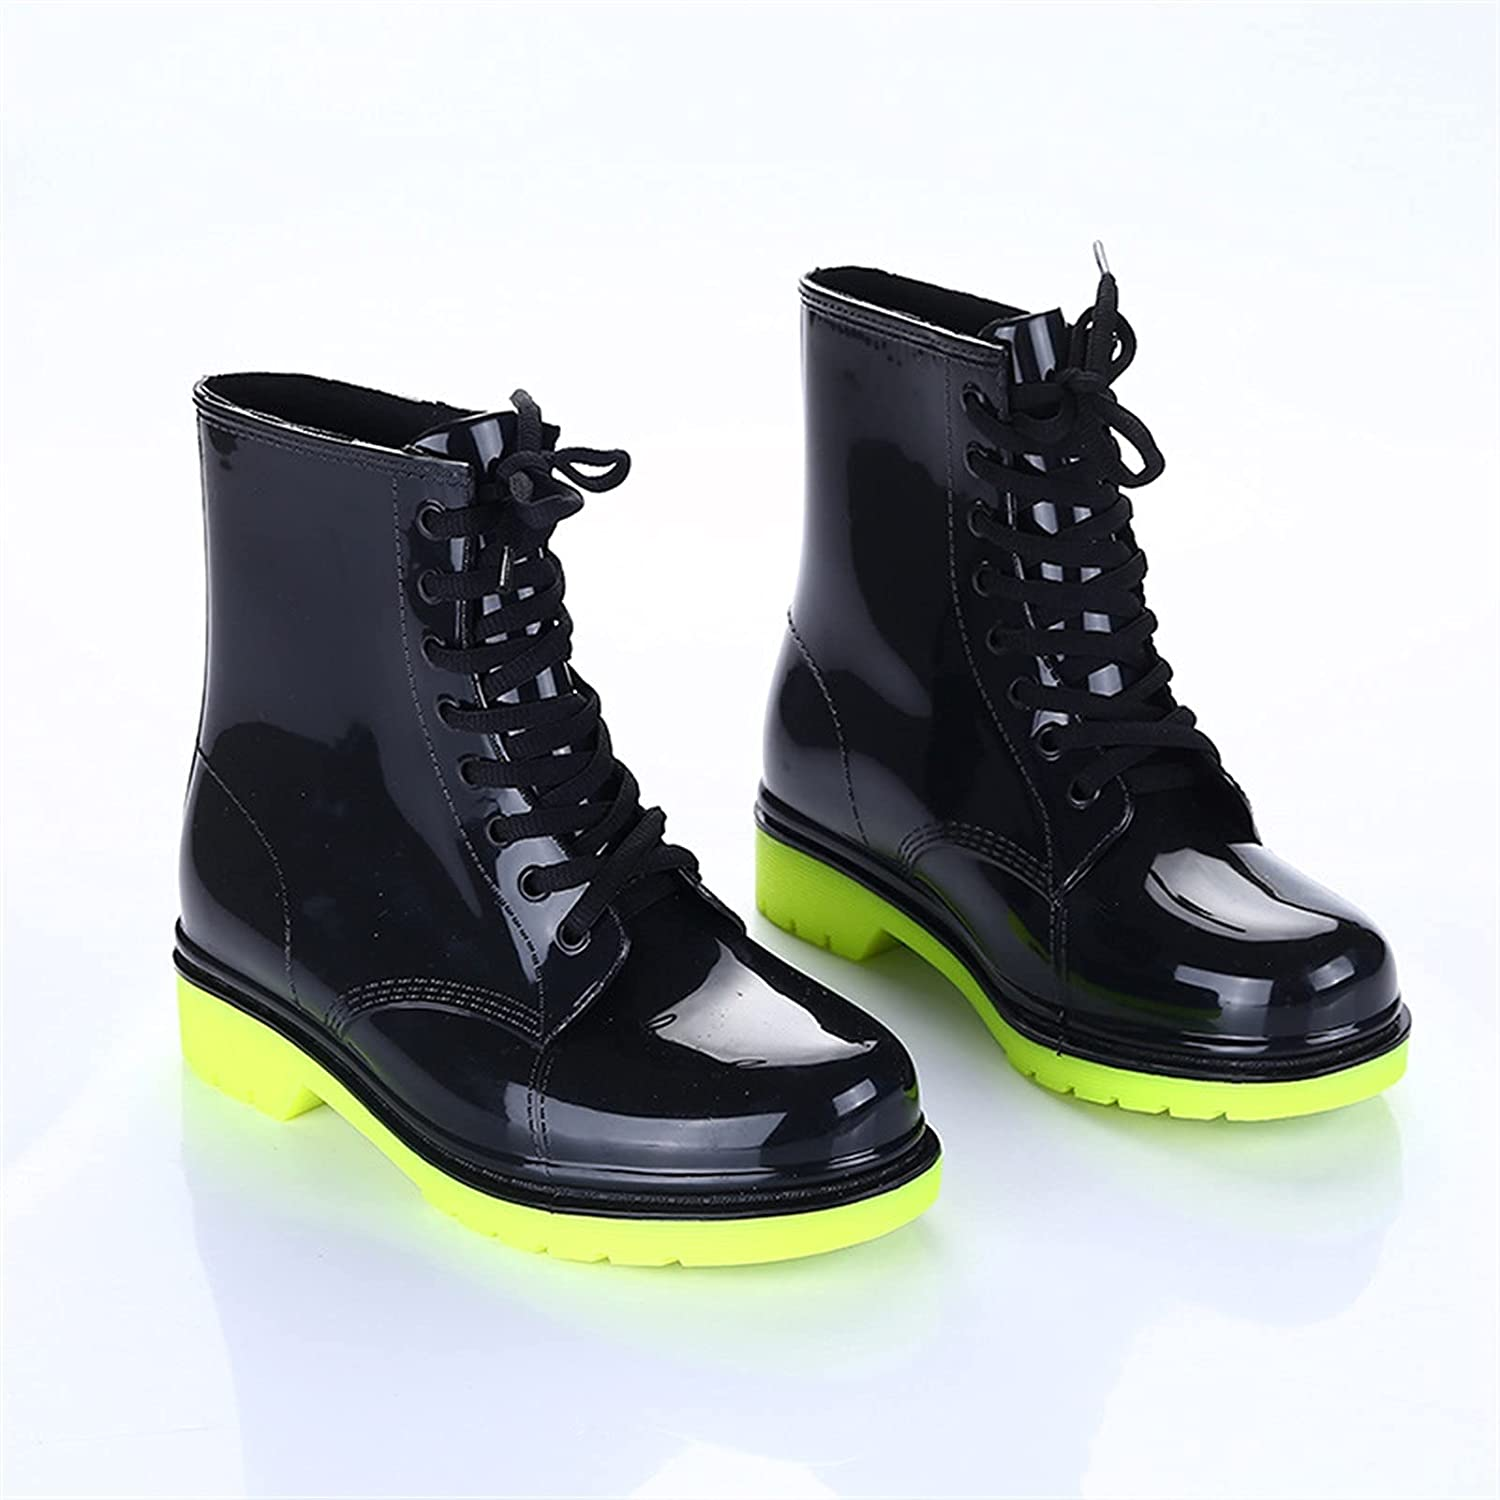 LUBINGT Rain Boots Animer and price revision Women quality assurance Color Waterproof Transparent